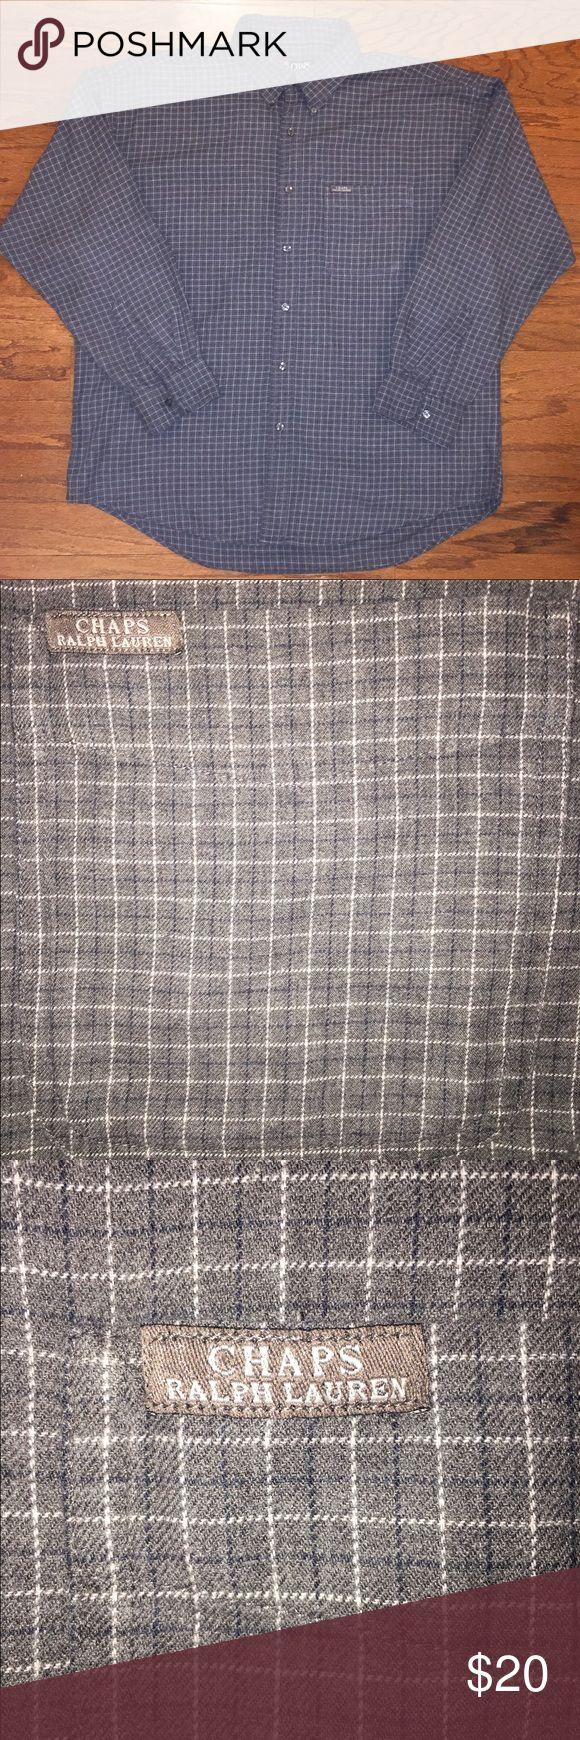 Ralph Lauren Chaps, Plaid Flannel, Long sleeve Rare...Classic, very good condition, gently worn, dark gray, thin blue and white plaid design, soft flannel material, Chaps logo on left front pocket. Ralph Lauren Shirts Casual Button Down Shirts